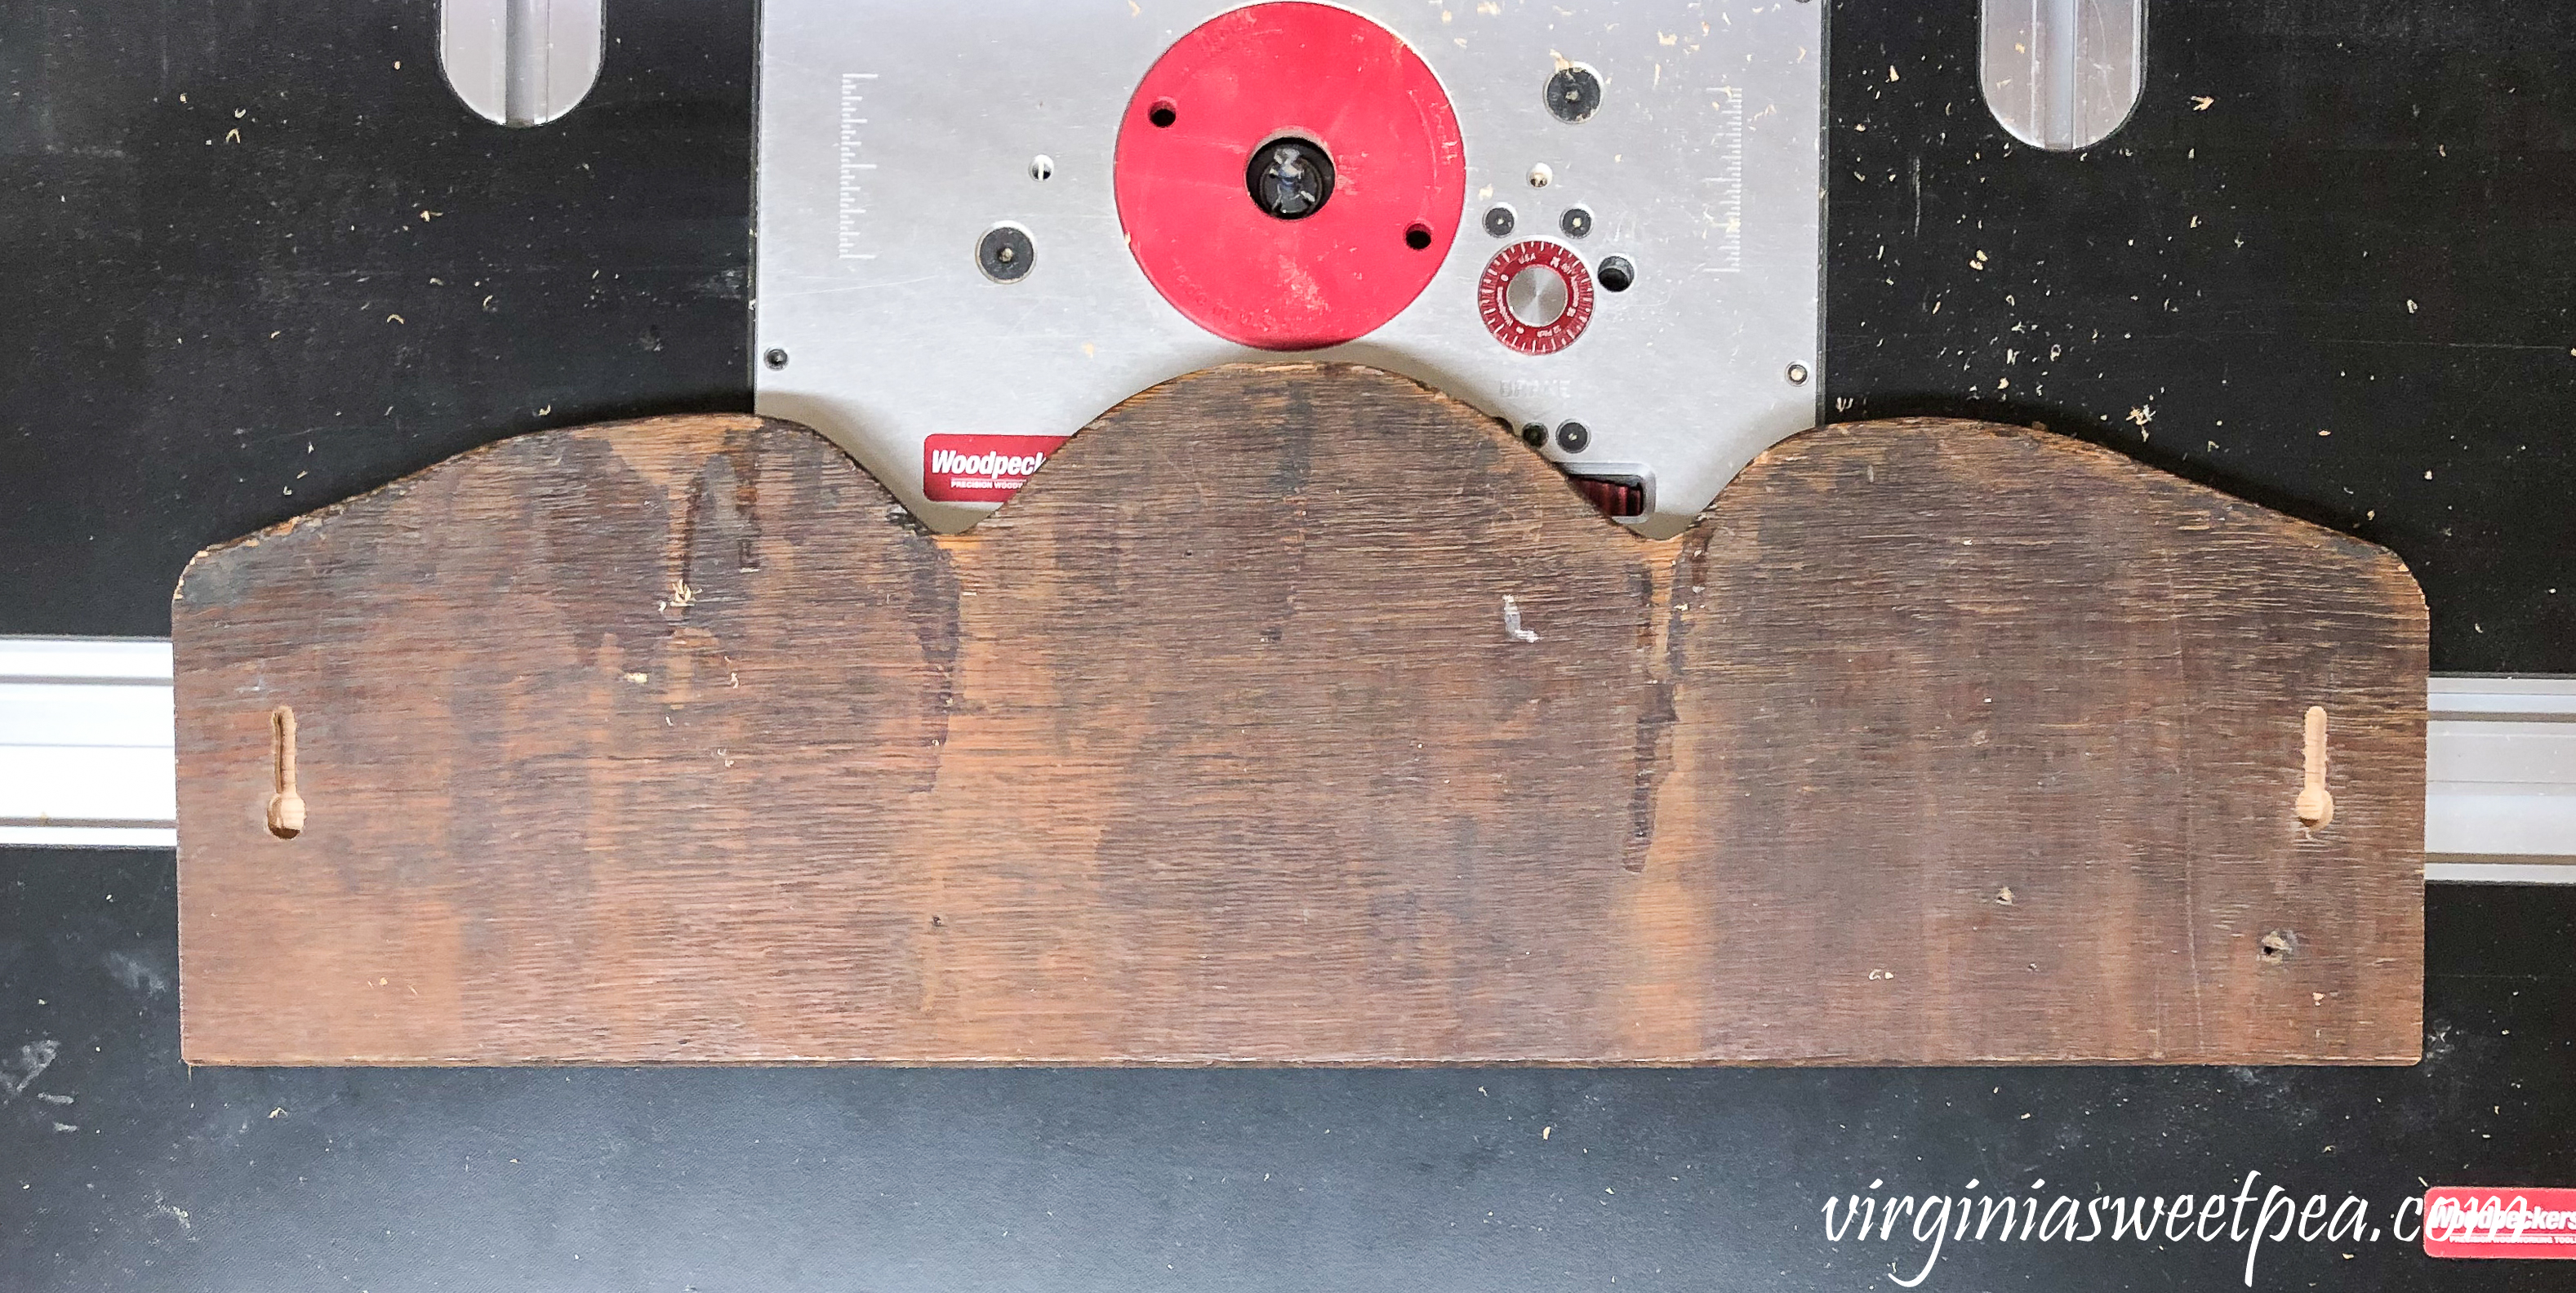 How to Make a DIY Upcycled Wood Jewelry Organizer - Use keyholes to hang the jewelry organizer. #diyjewelryorganizer #diynecklaceorganizer #upcycledproject